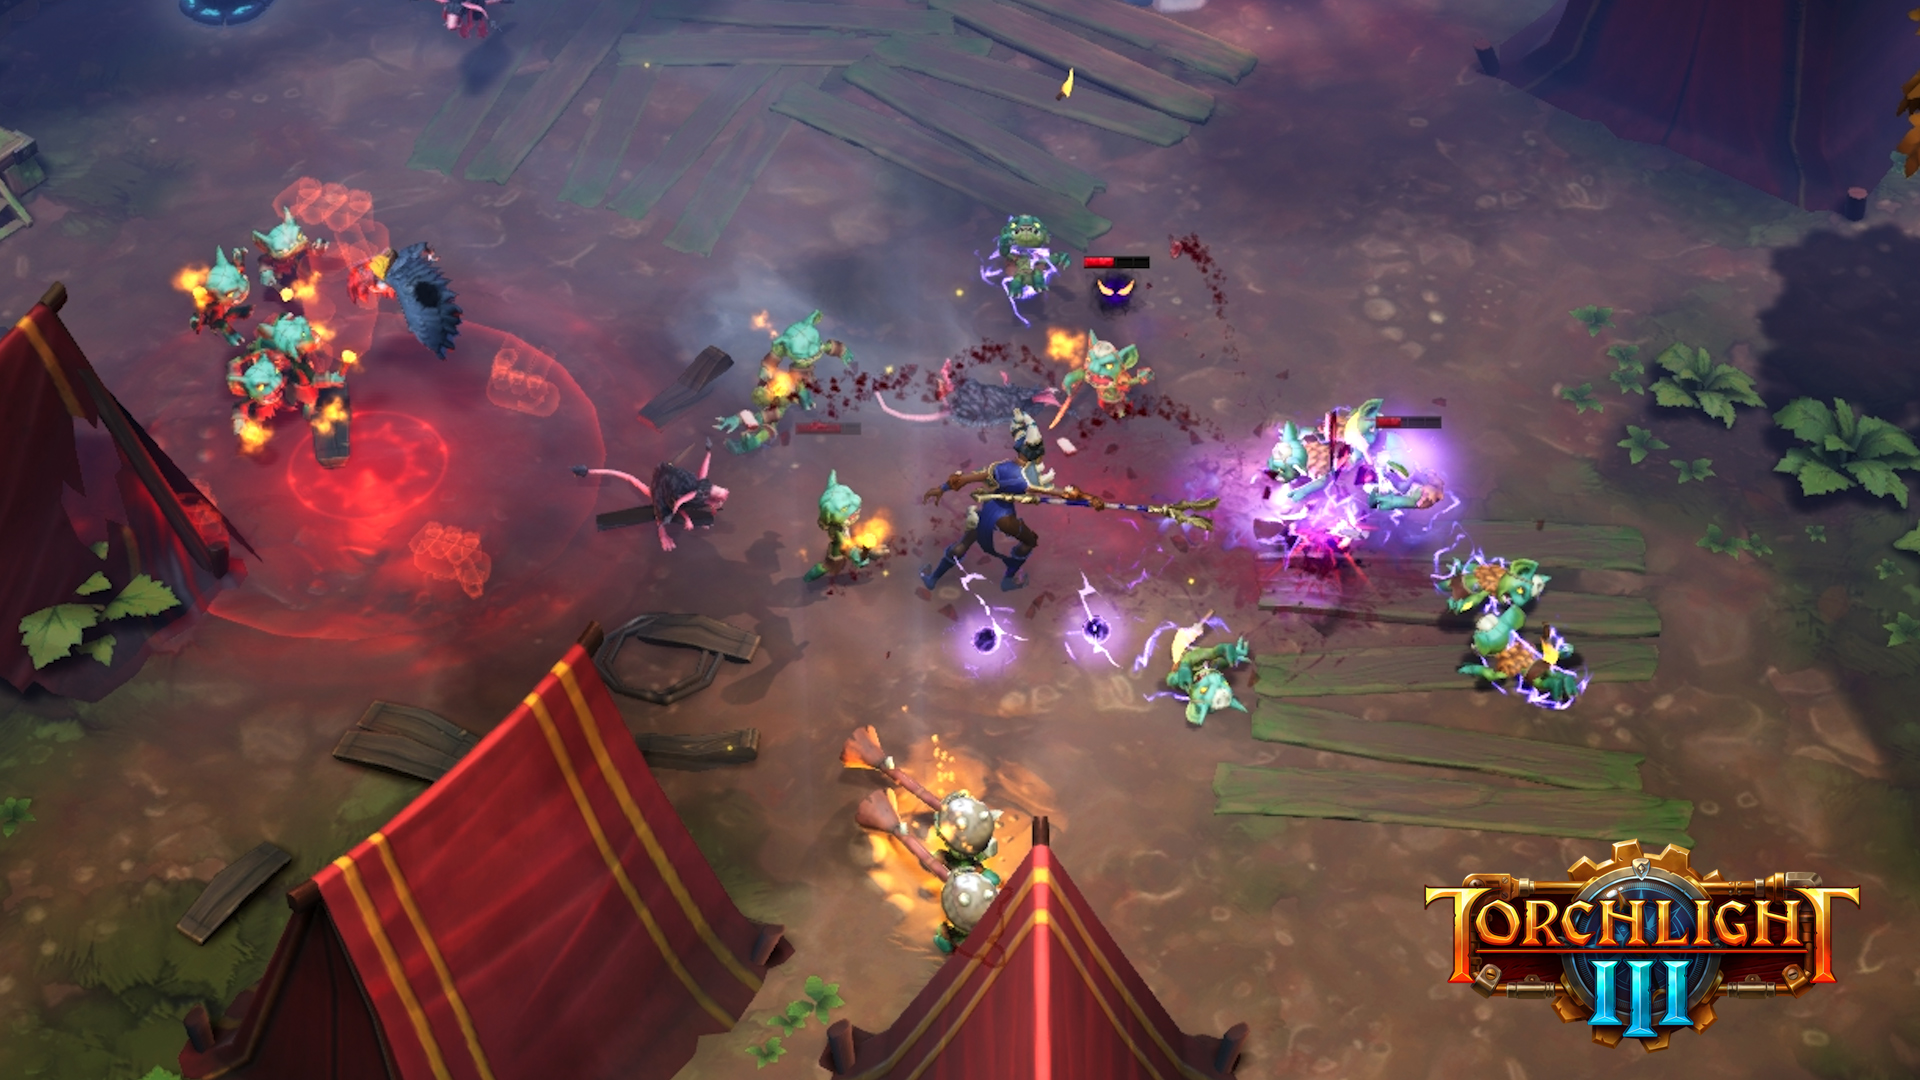 Torchlight 3 Guide. How to play pirates online?